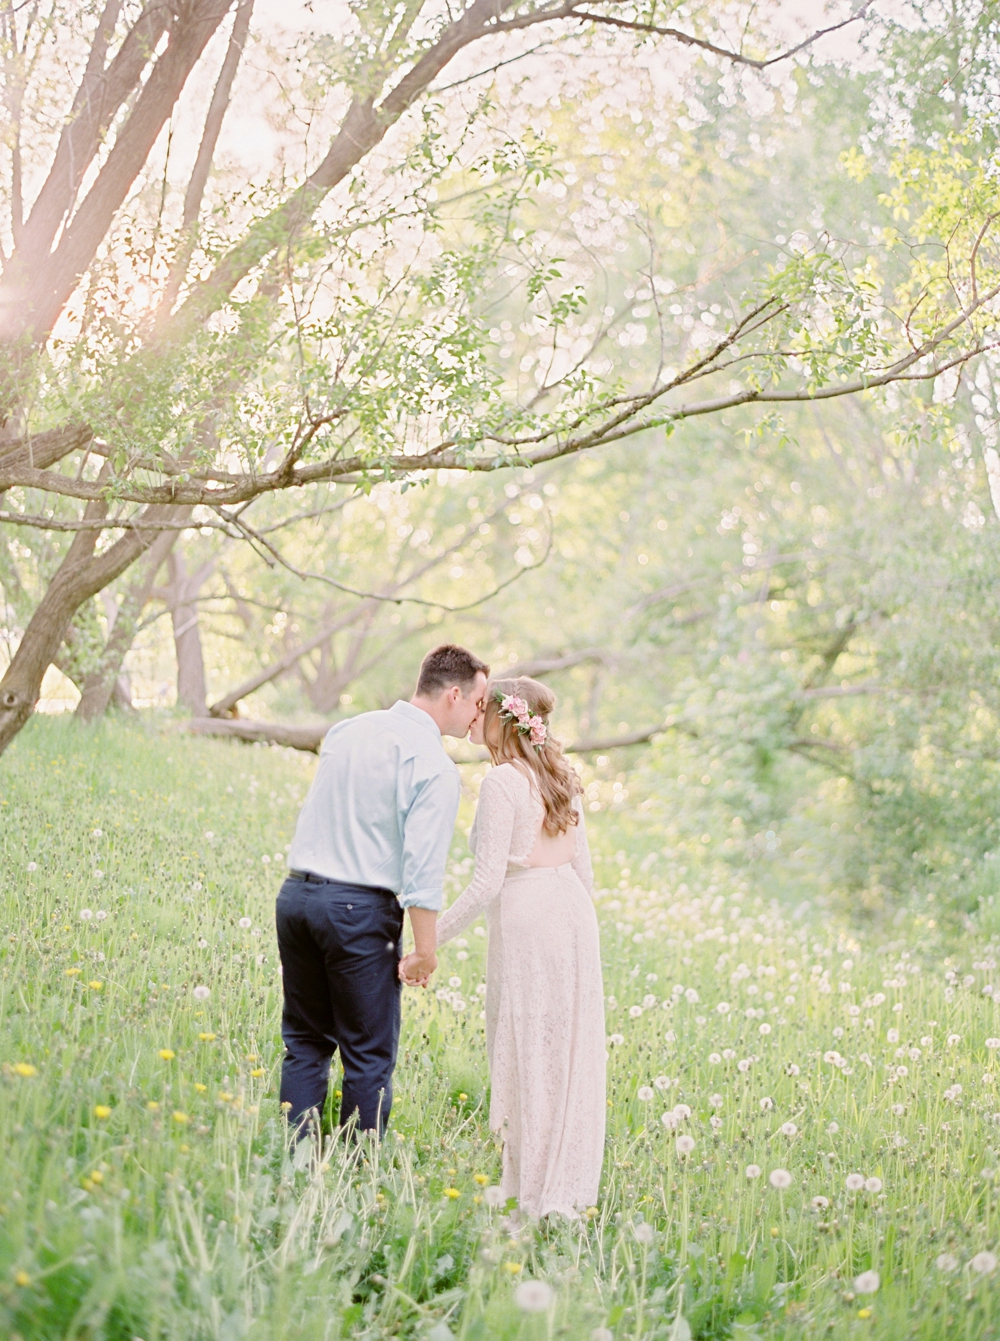 Calgary family photographers | spring maternity session